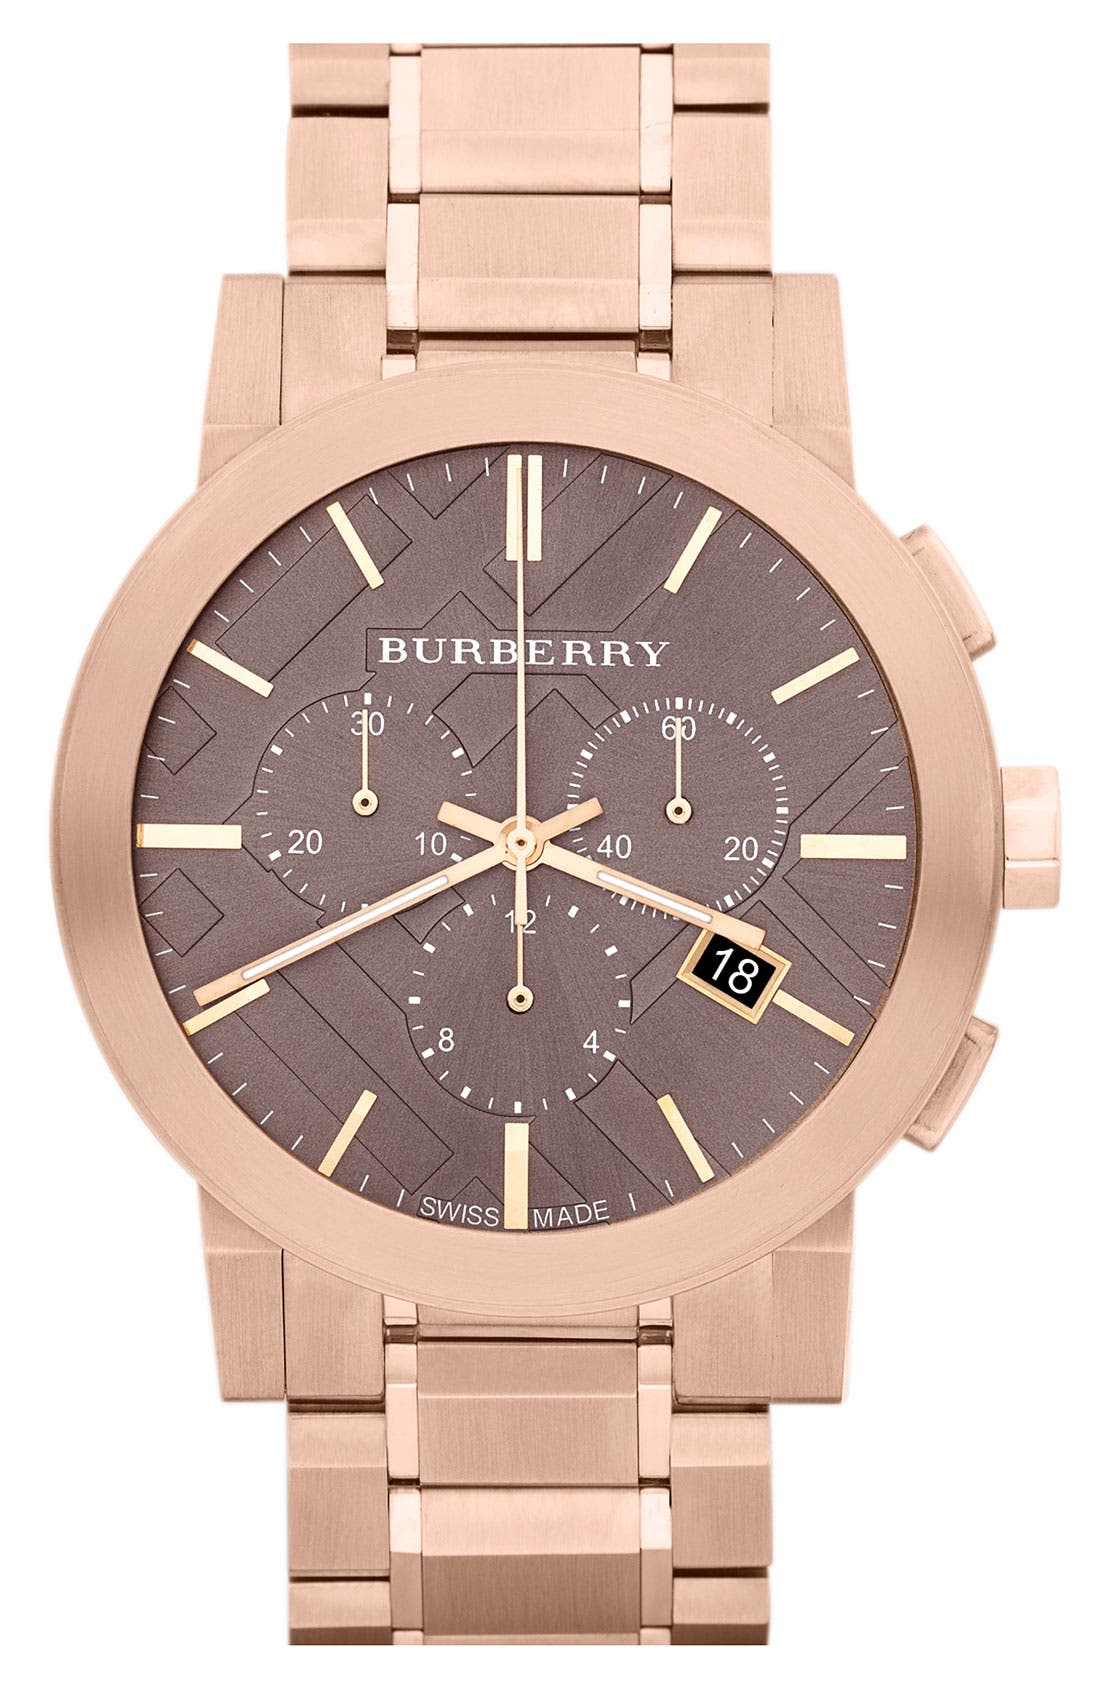 Main Image - Burberry Large Chronograph Bracelet Watch, 42mm (Regular Retail Price: $895.00)